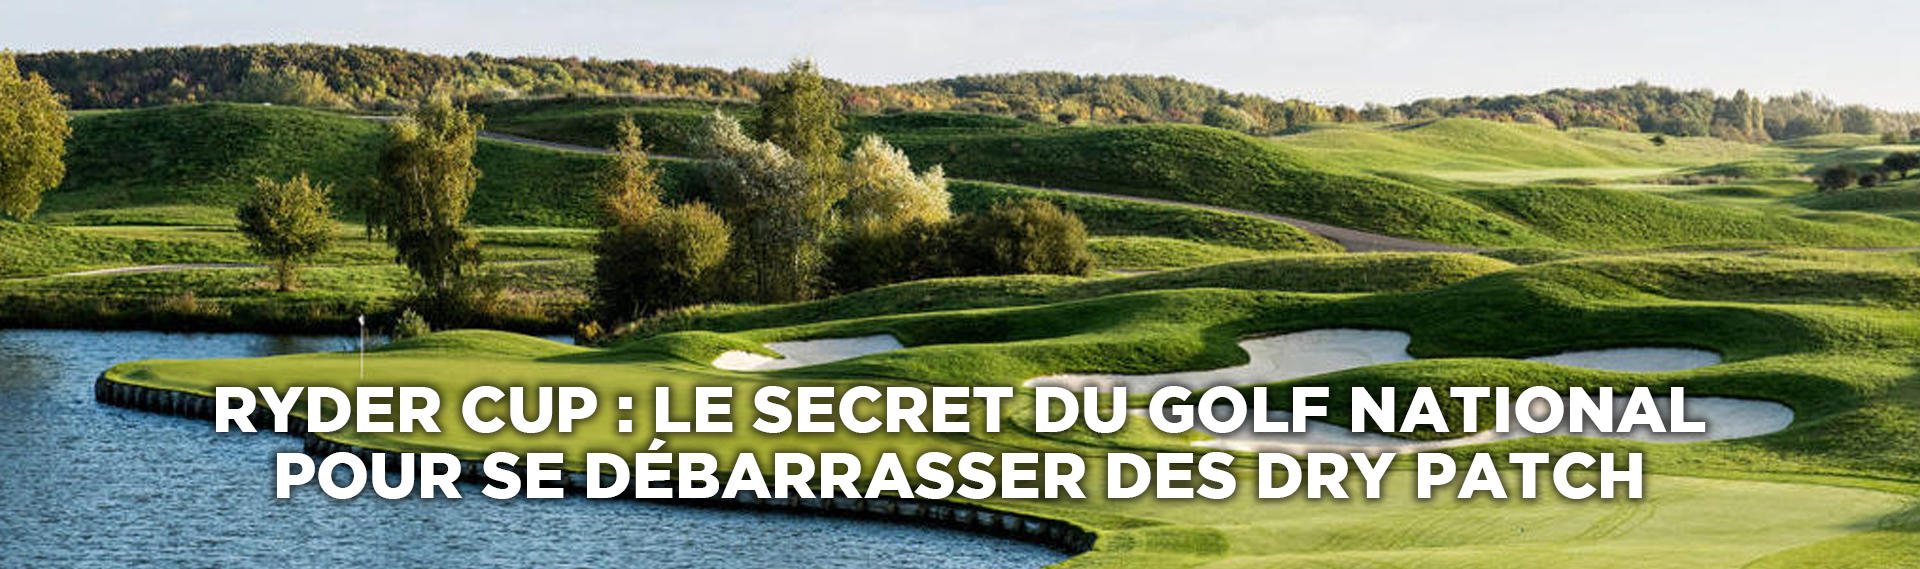 dry-patch-golf-ryder-cup-golf-national